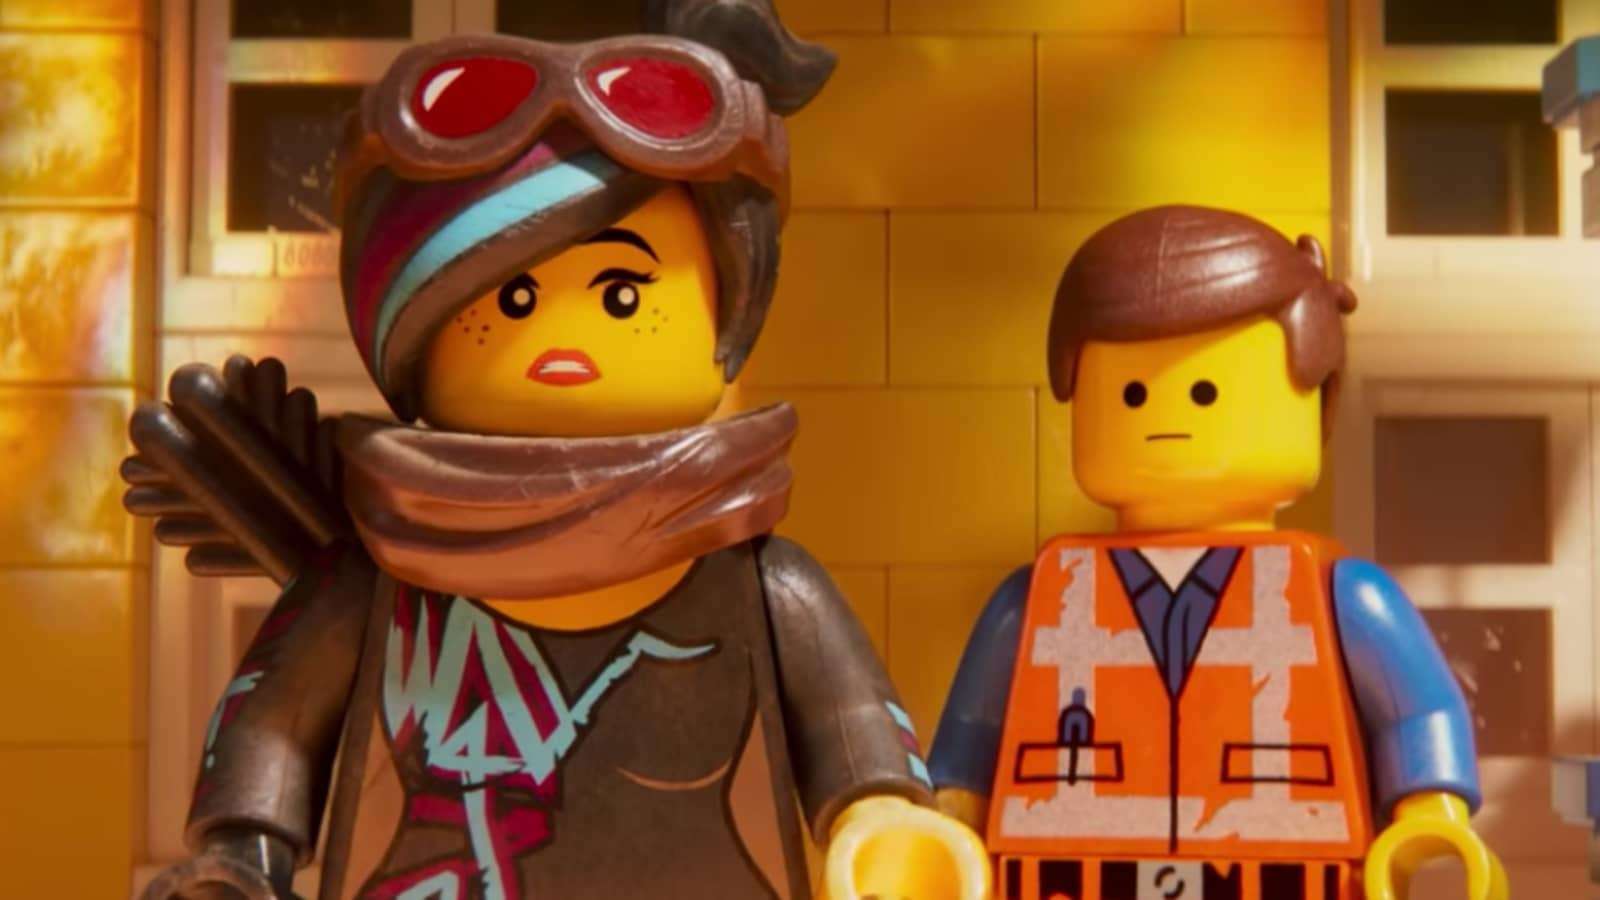 The Box Office Needs The Lego Movie 2 To Reignite Ticket Sales